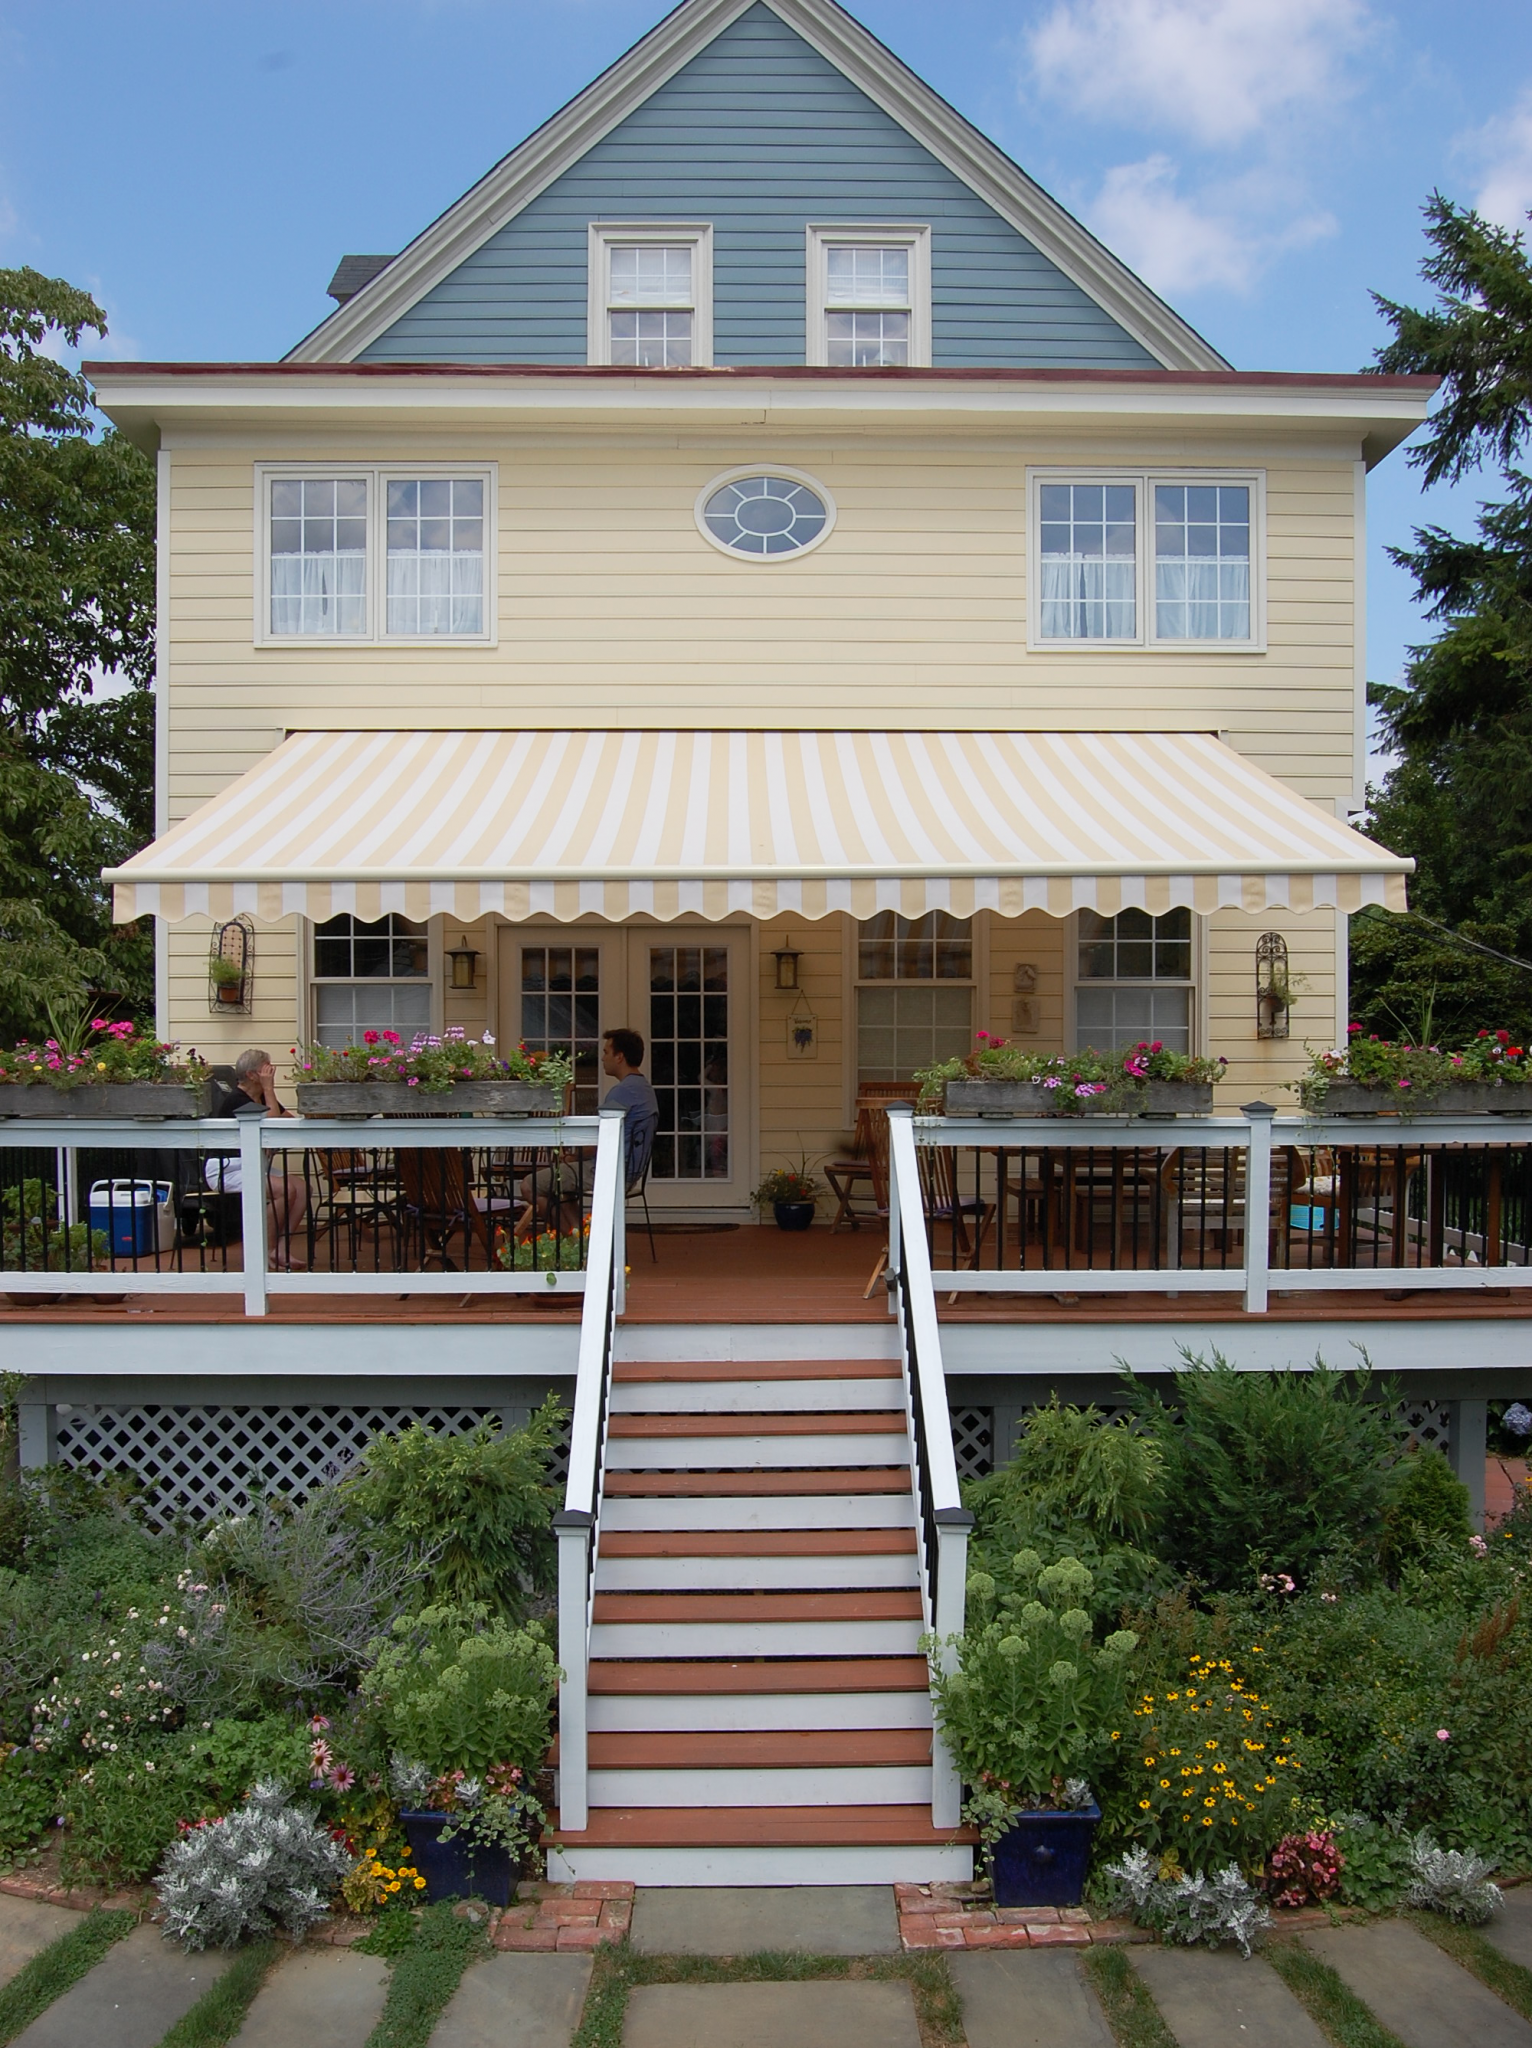 Image of an Awning Installation